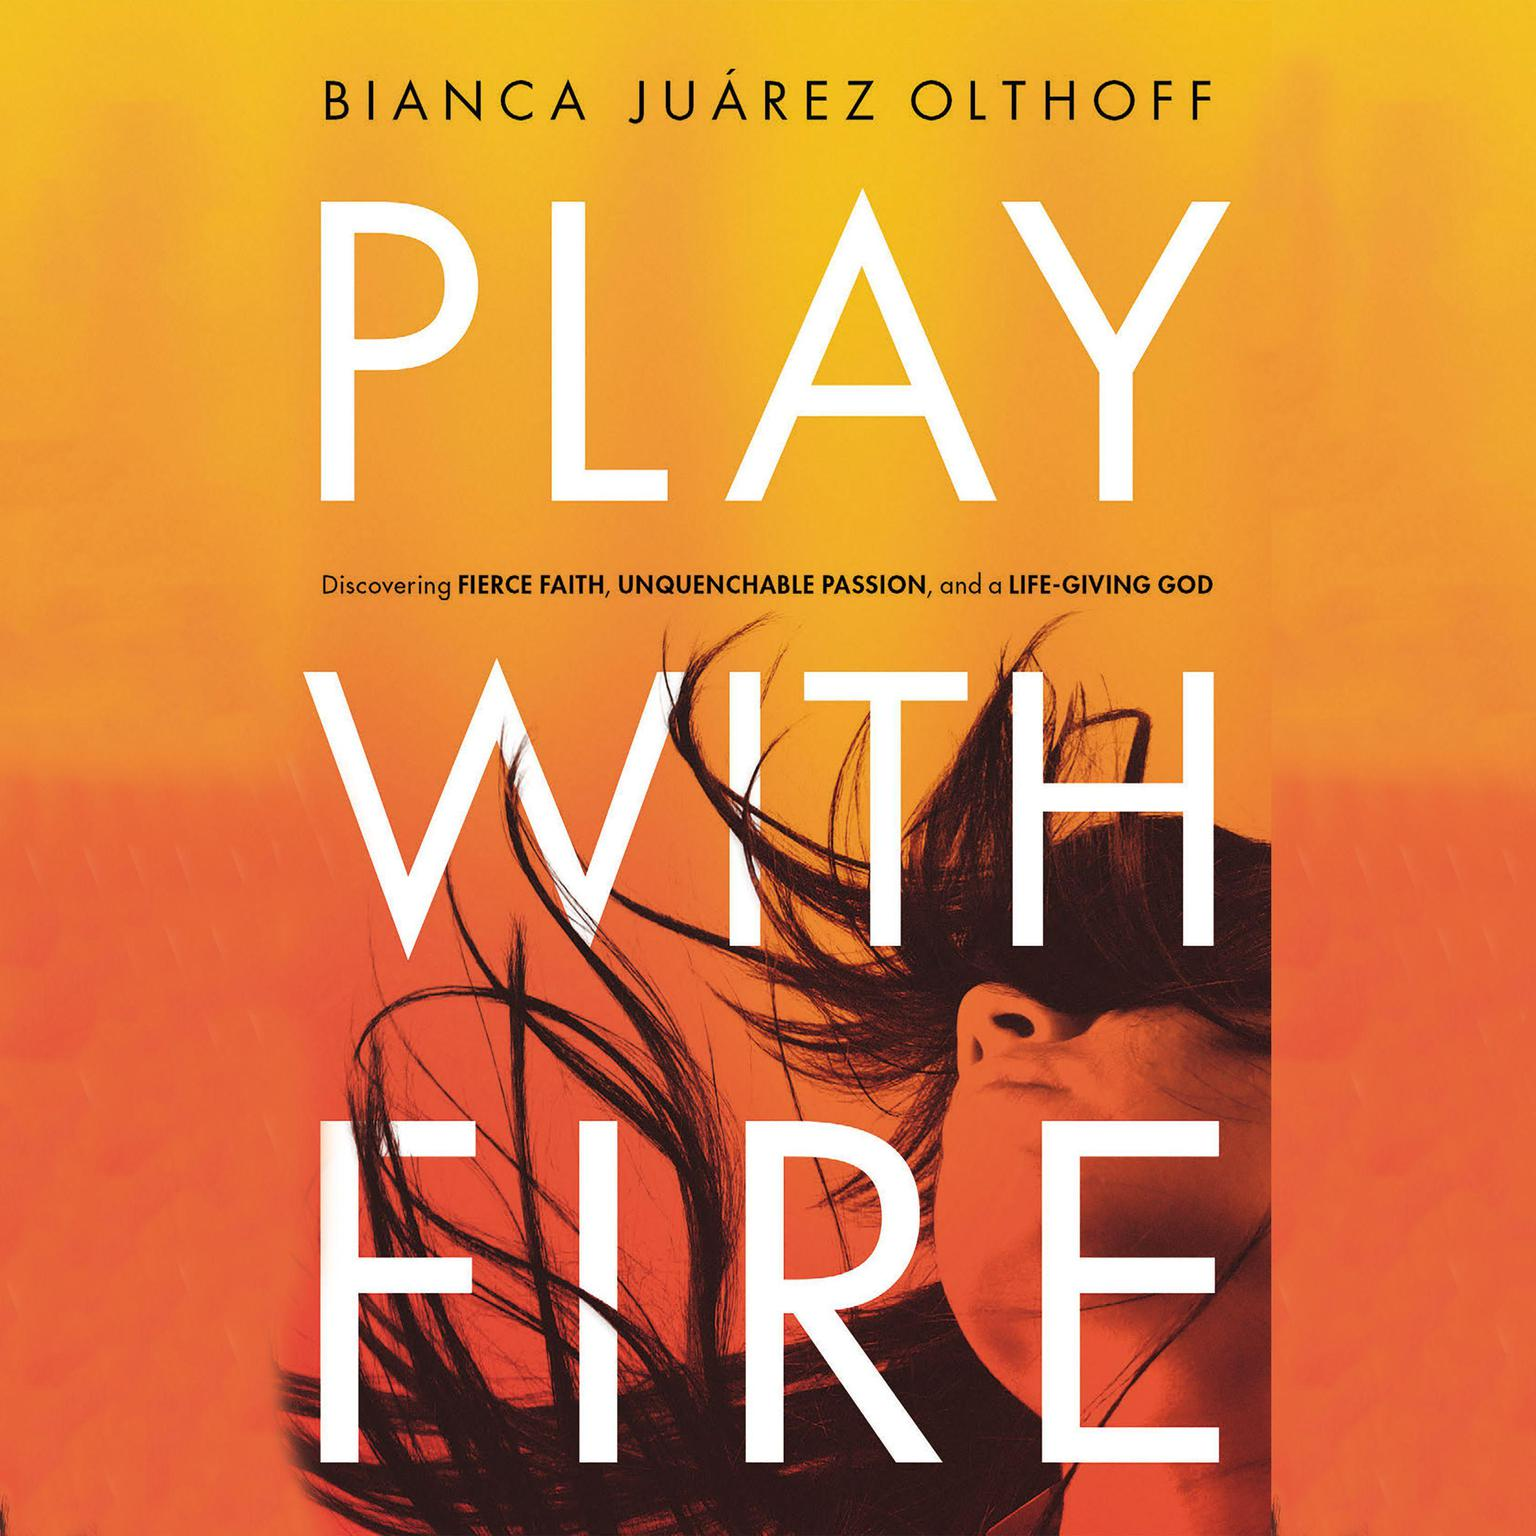 Printable Play with Fire: Discovering Fierce Faith, Unquenchable Passion, and a Life-Giving God Audiobook Cover Art